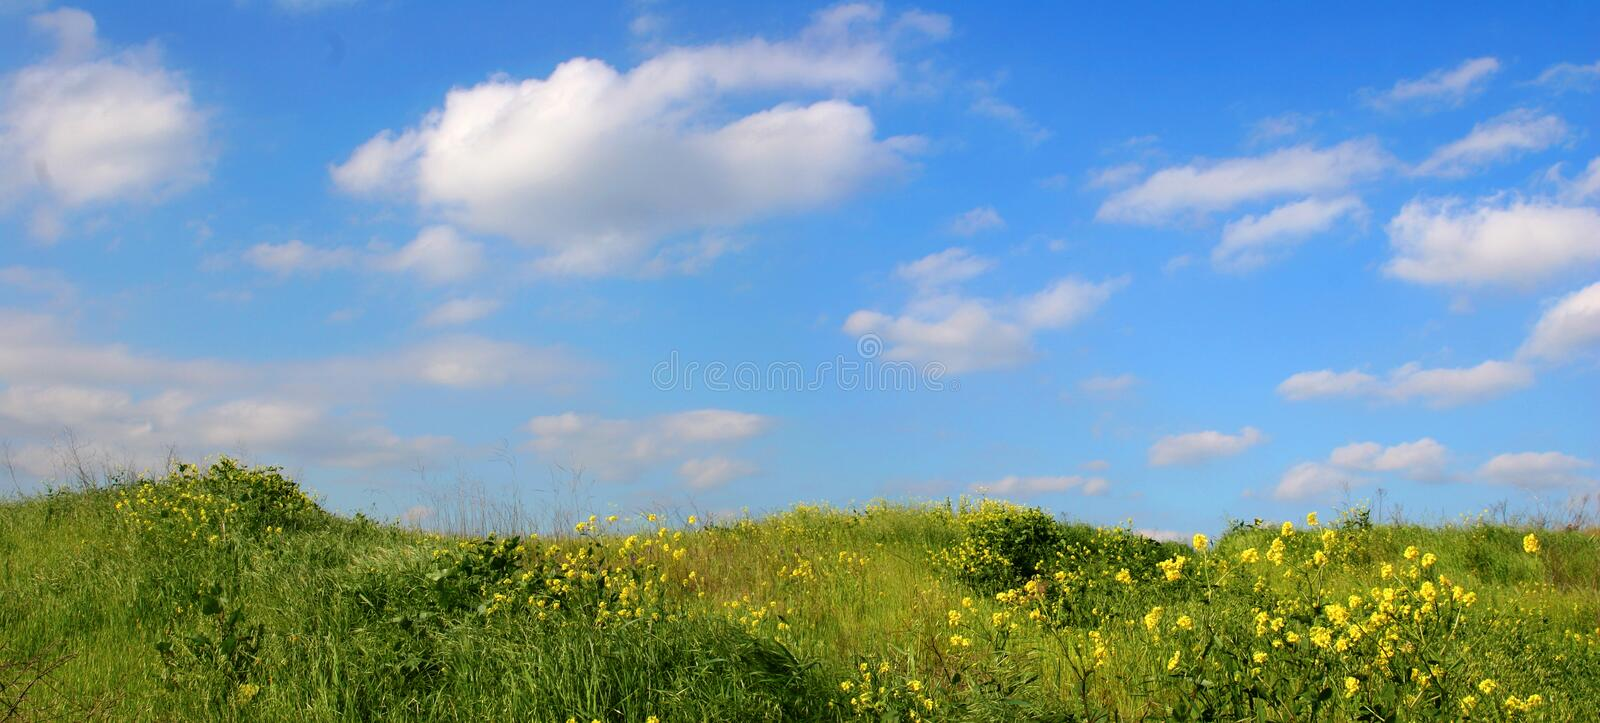 Background Of Sky And Grass stock photos